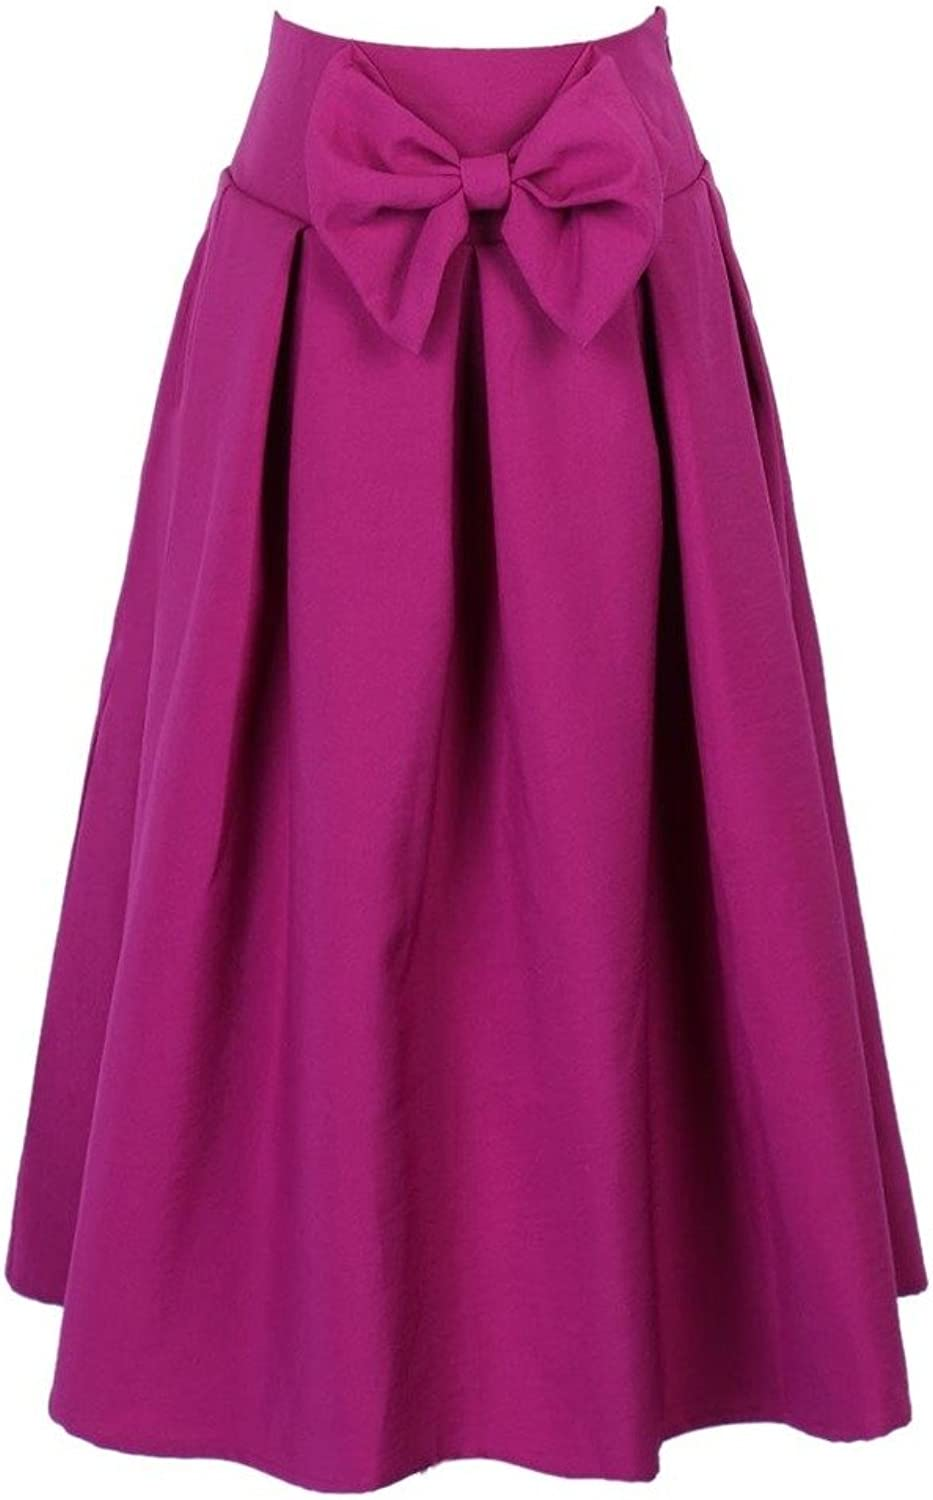 CHARLES RICHARDS CR Women's Casual Pleat Bowknot Front Midi Skirt